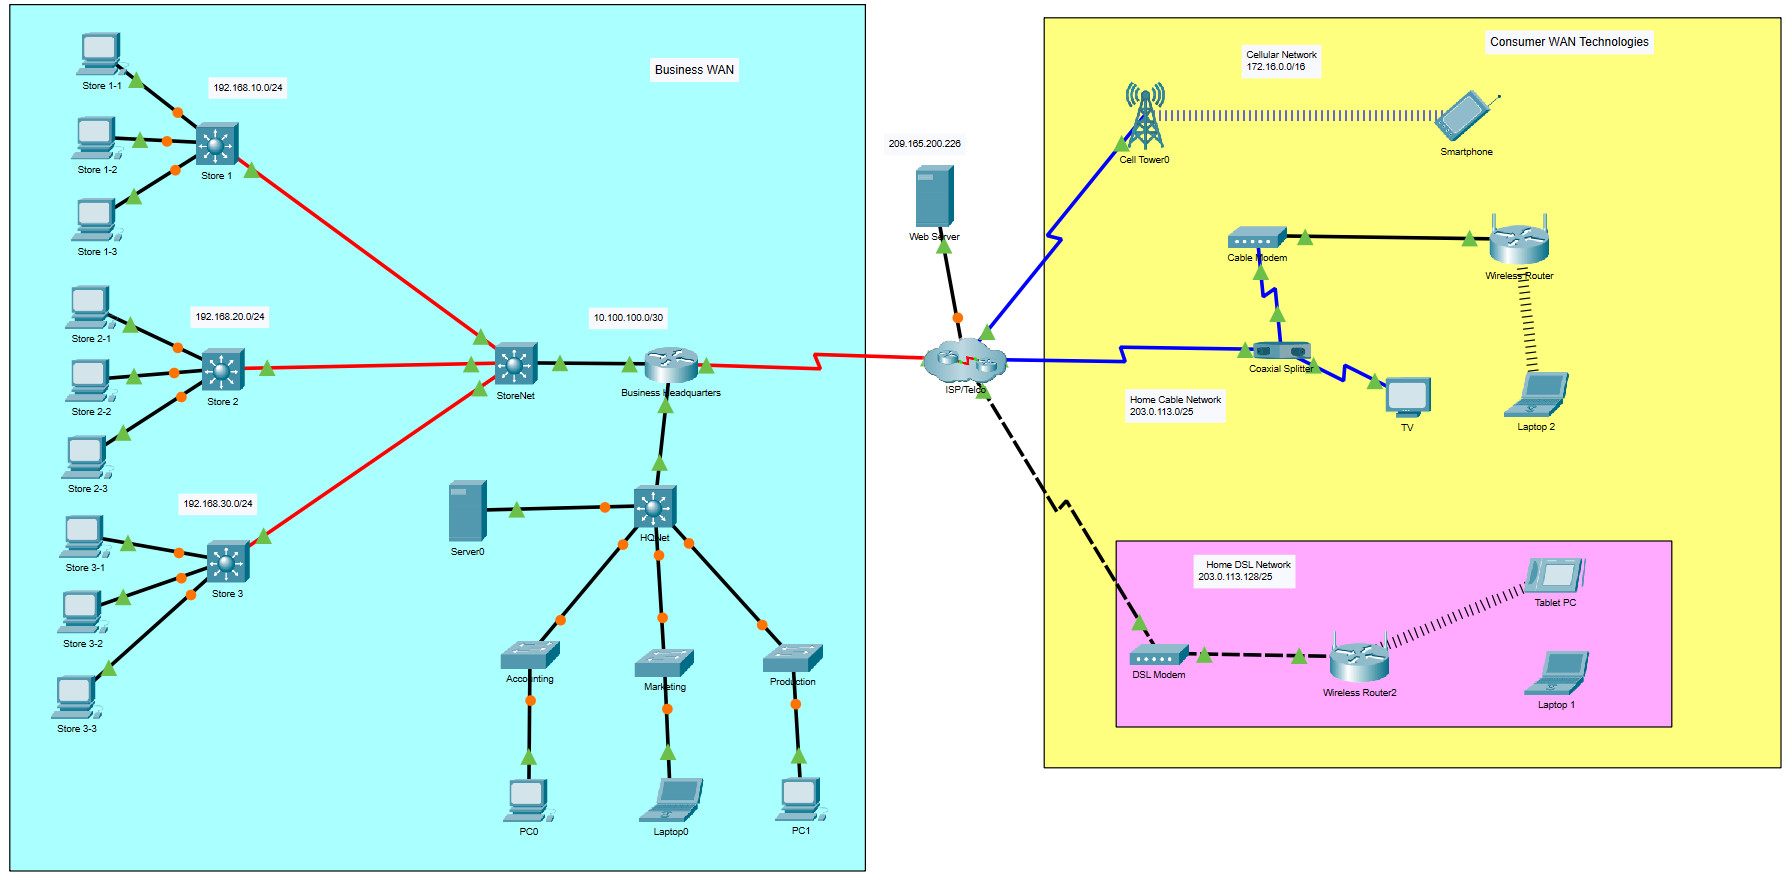 7.6.1 Packet Tracer – WAN Concepts (Answers)